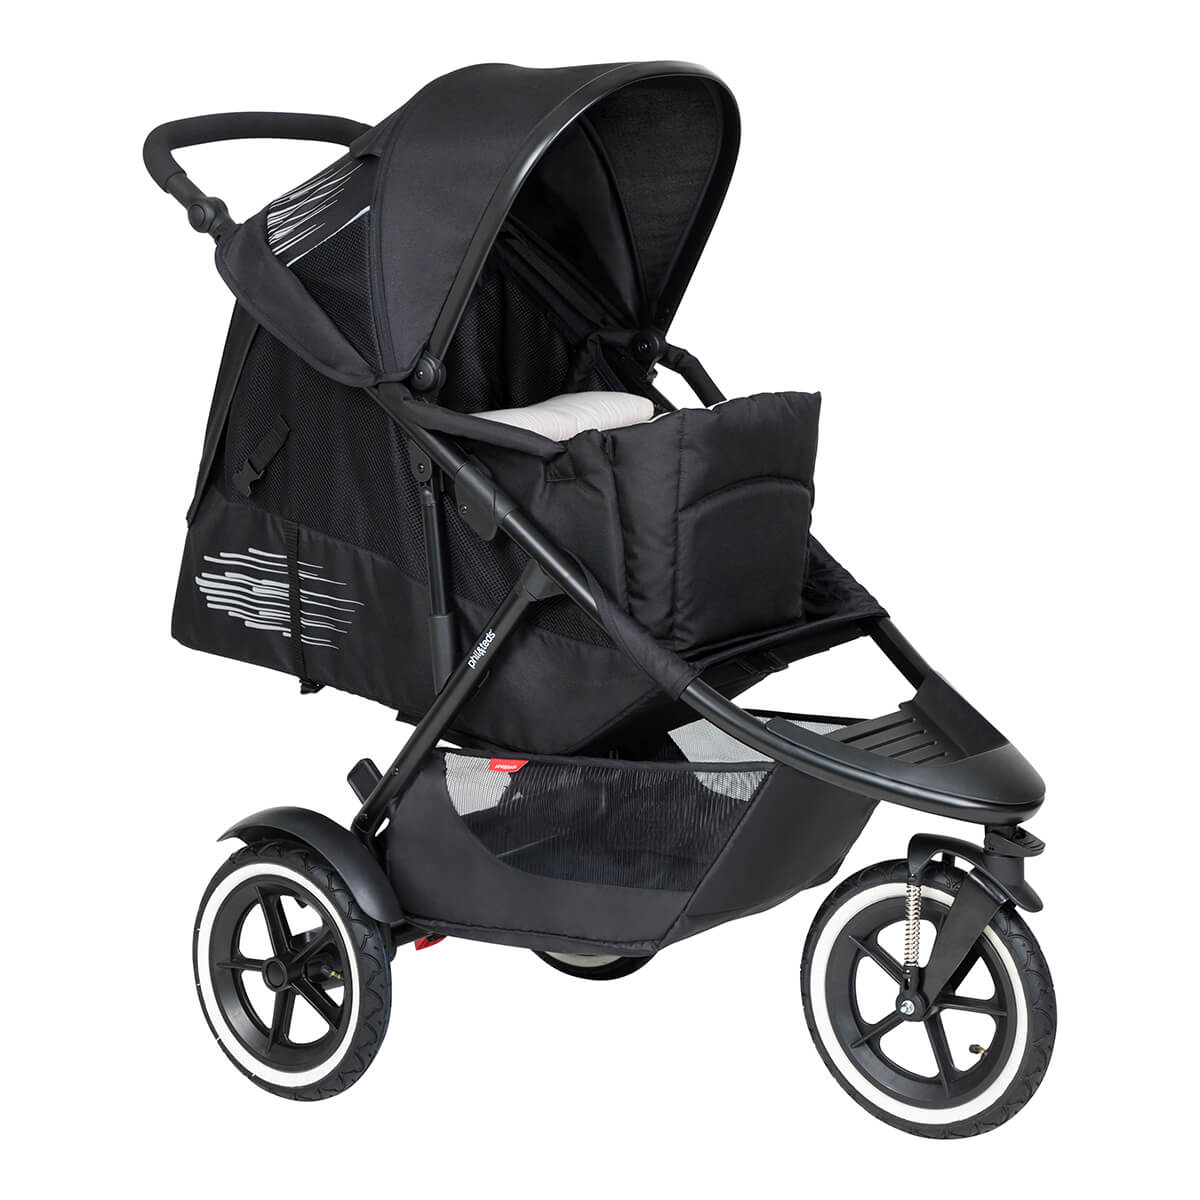 https://cdn.accentuate.io/4509528326232/19272668119128/philteds-sport-buggy-with-cocoon-full-recline-v1626484467869.jpg?1200x1200